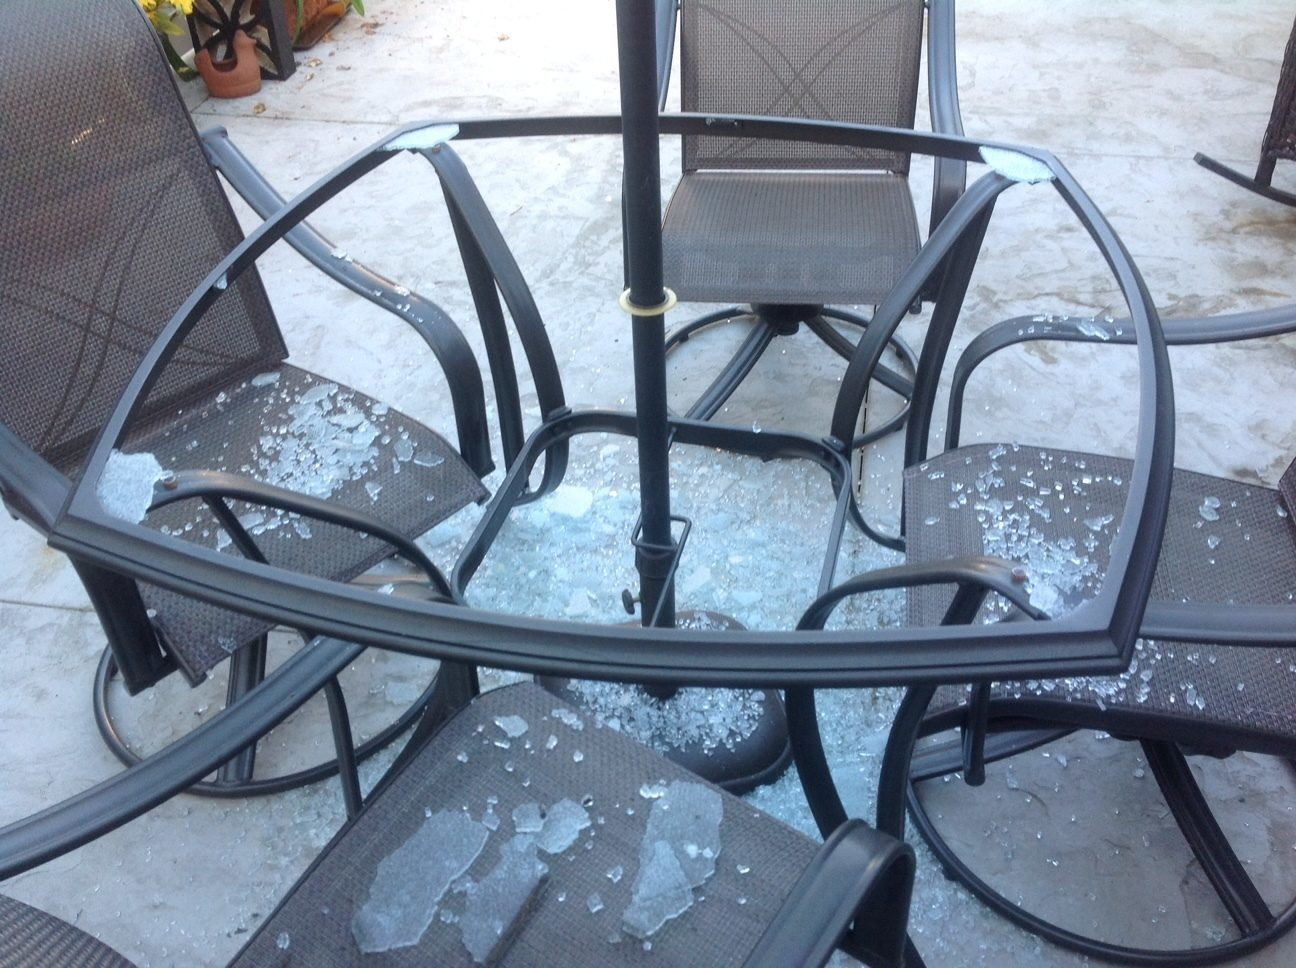 Glass patio table rectangular - Early This Morning We Found The Glass Tabletop Of Our Patio Table Shattered Into Thousands Of Pieces We Initially Suspected Vandalism But Absolutely